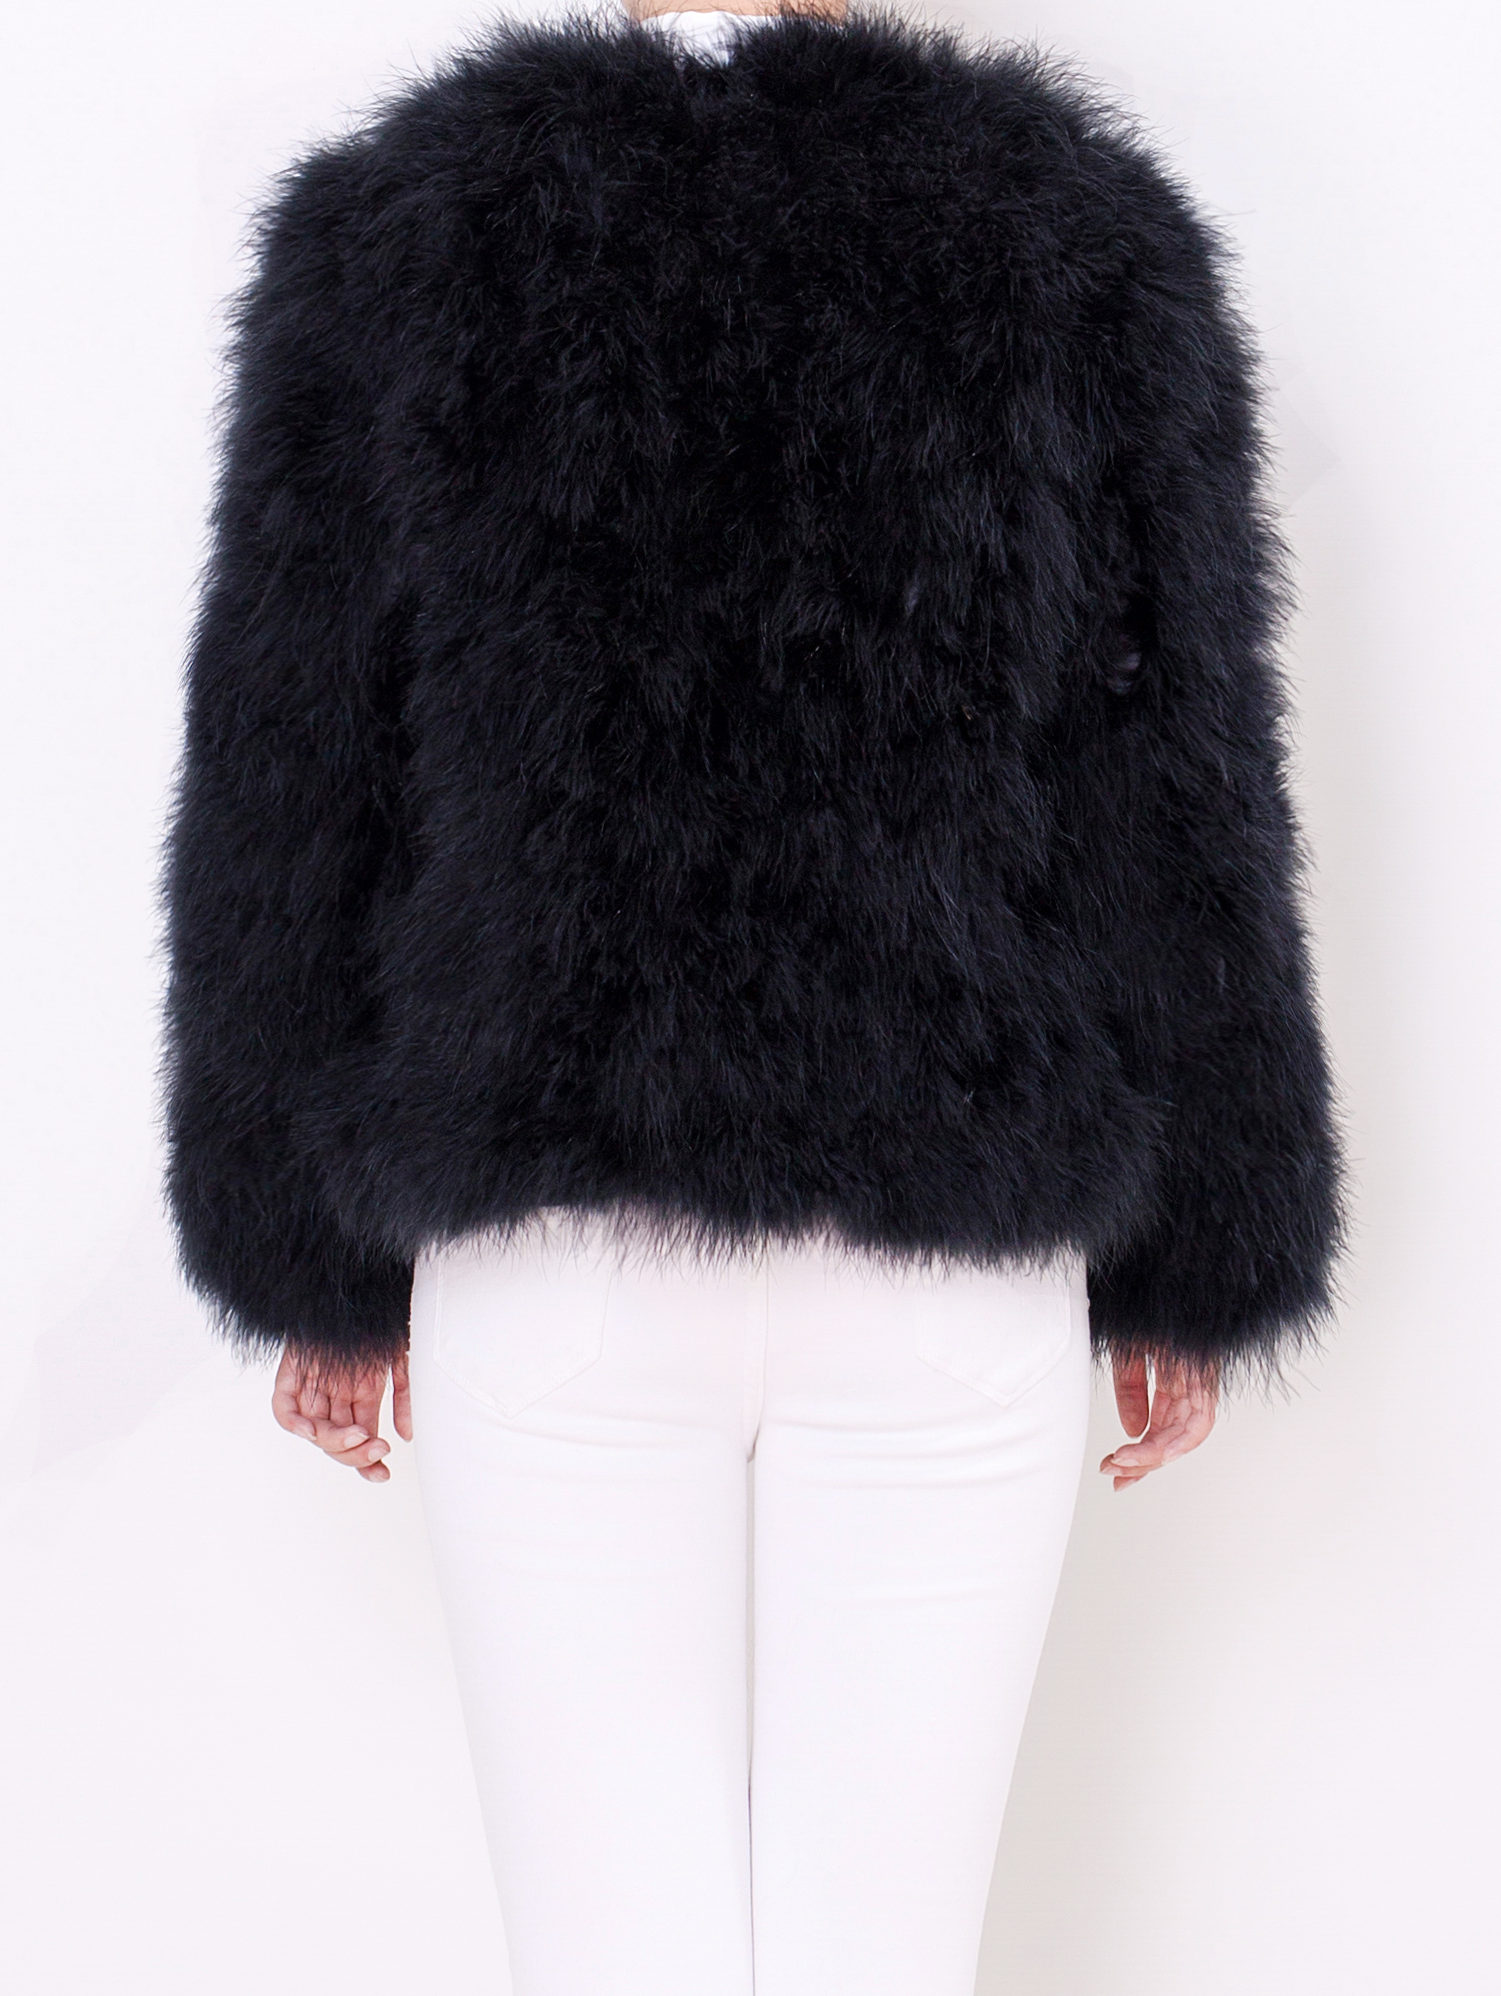 997453a69ff8 The Classic Feather Collection / Fluffy Feather Fever Jacket